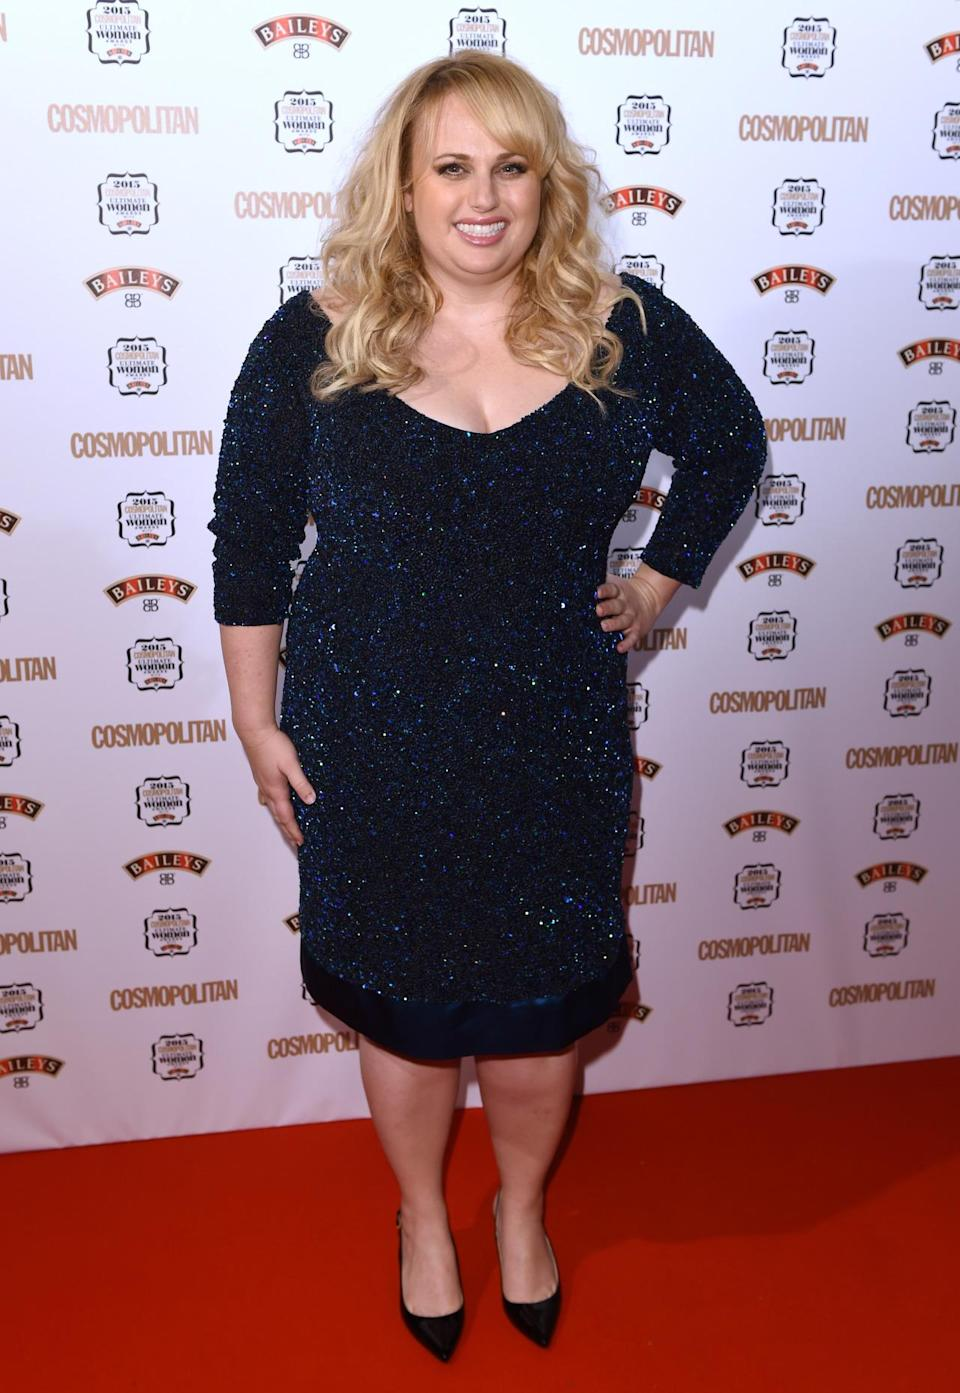 Taking home the Ultimate Woman Award, Rebel Wilson looked stunning in a glittering midnight blue frock. [Photo: Rex]